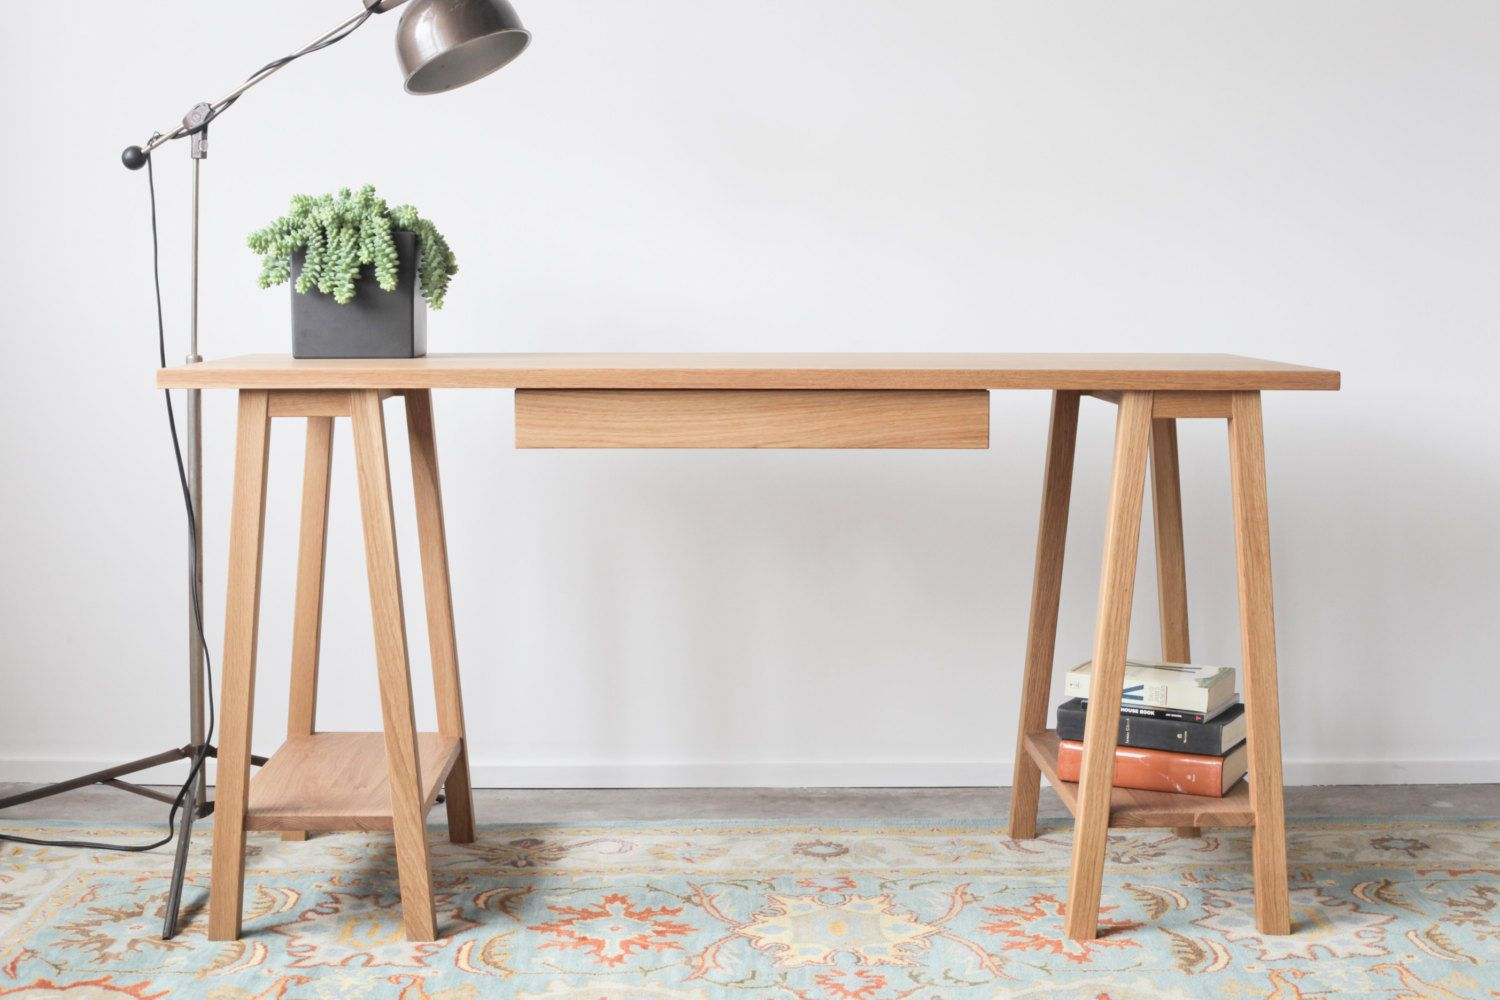 Image Result For Sawhorse Table Legs